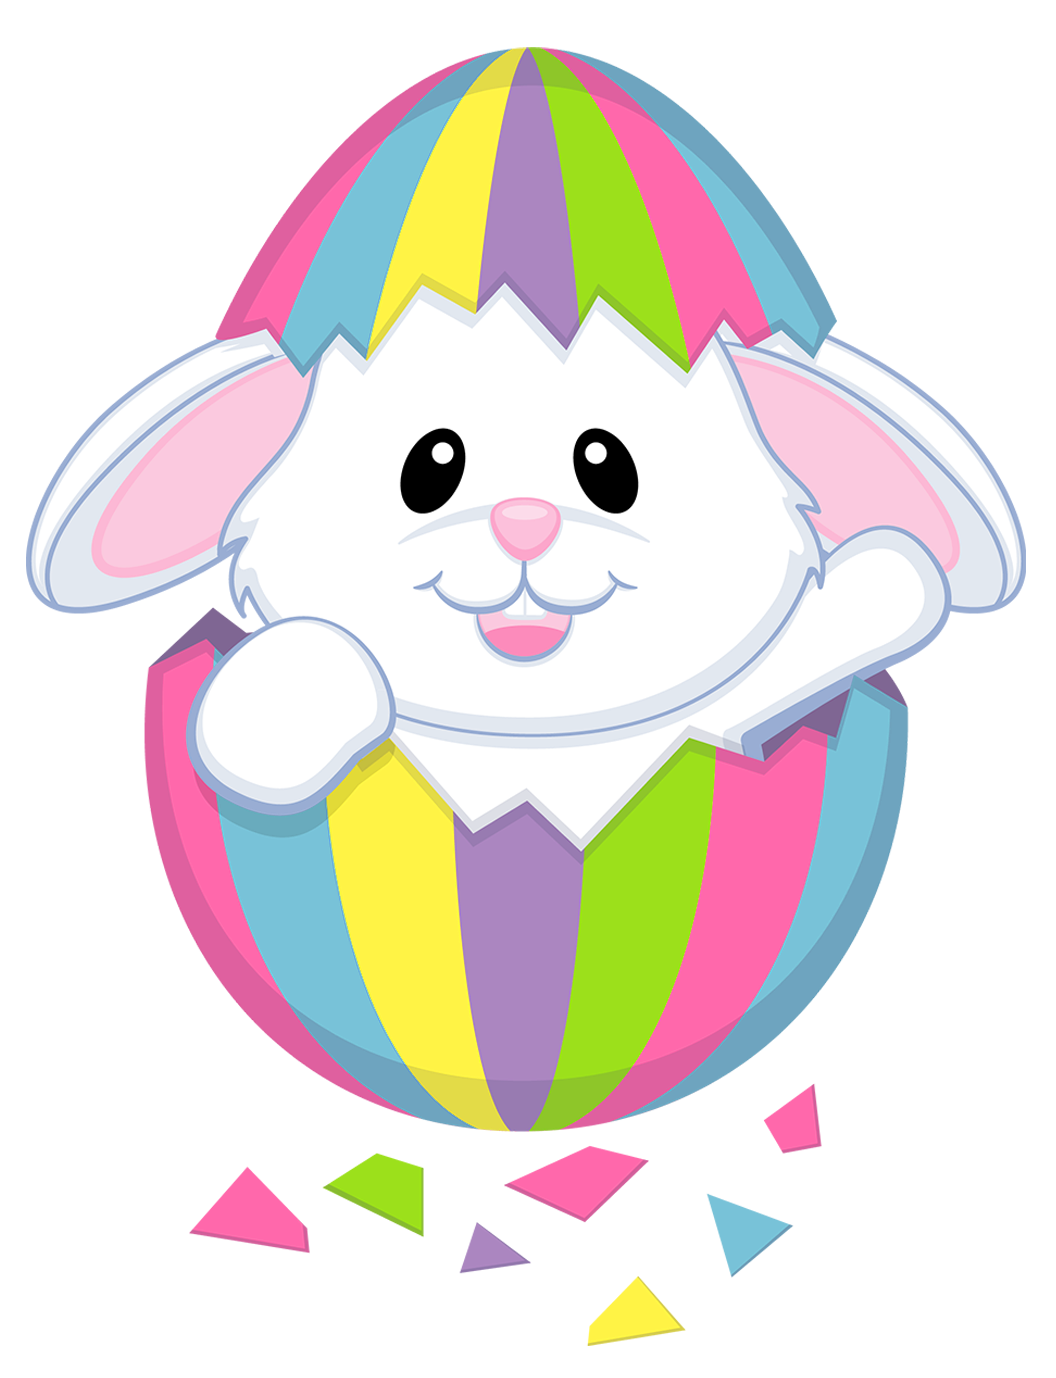 easter bunny clipart best easter eggs pinterest easter bunny rh pinterest com clipart easter egg hunt clipart easter eggs